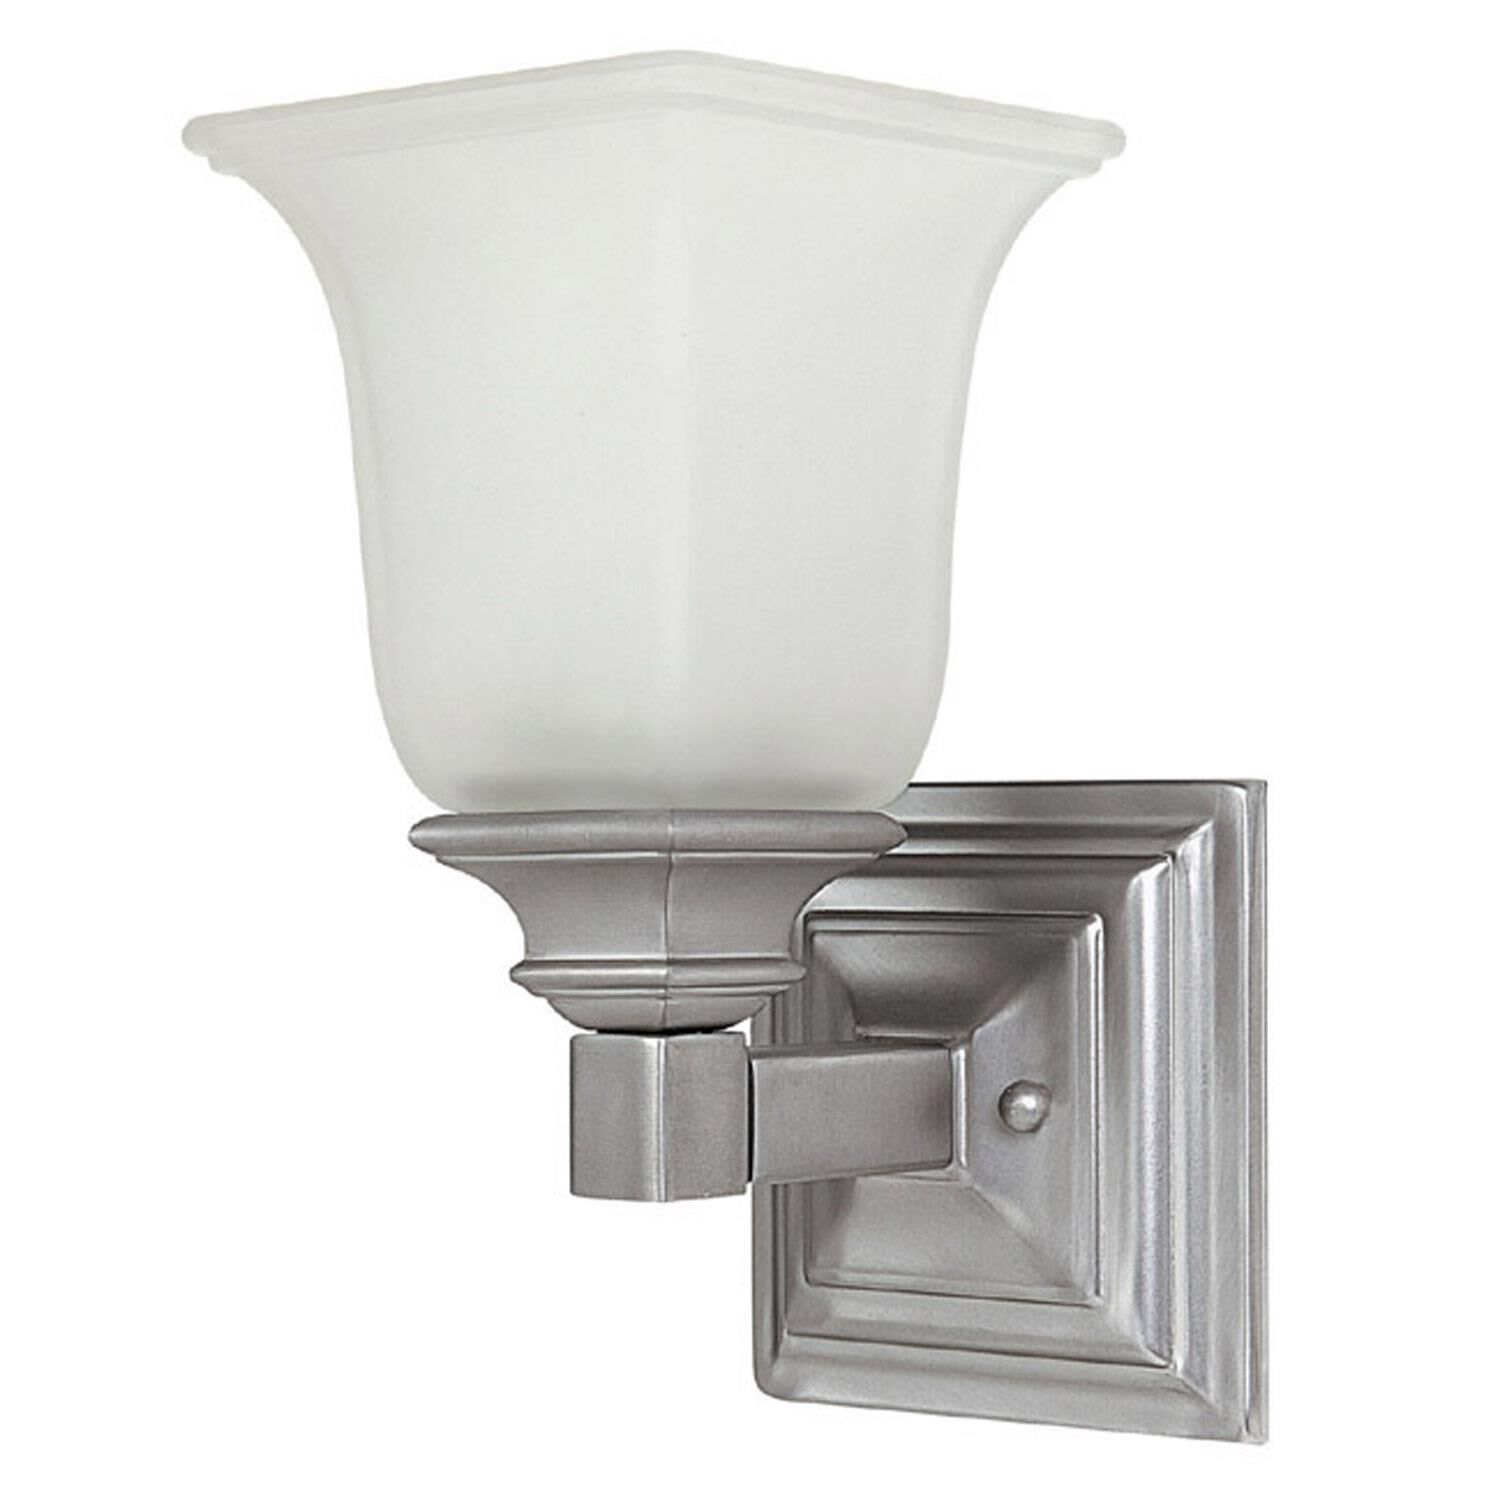 Capital Lighting Fixture Company Capital 6 Inch Wall Sconce Capital - 1061mn-142 - Traditional Wall Sconce